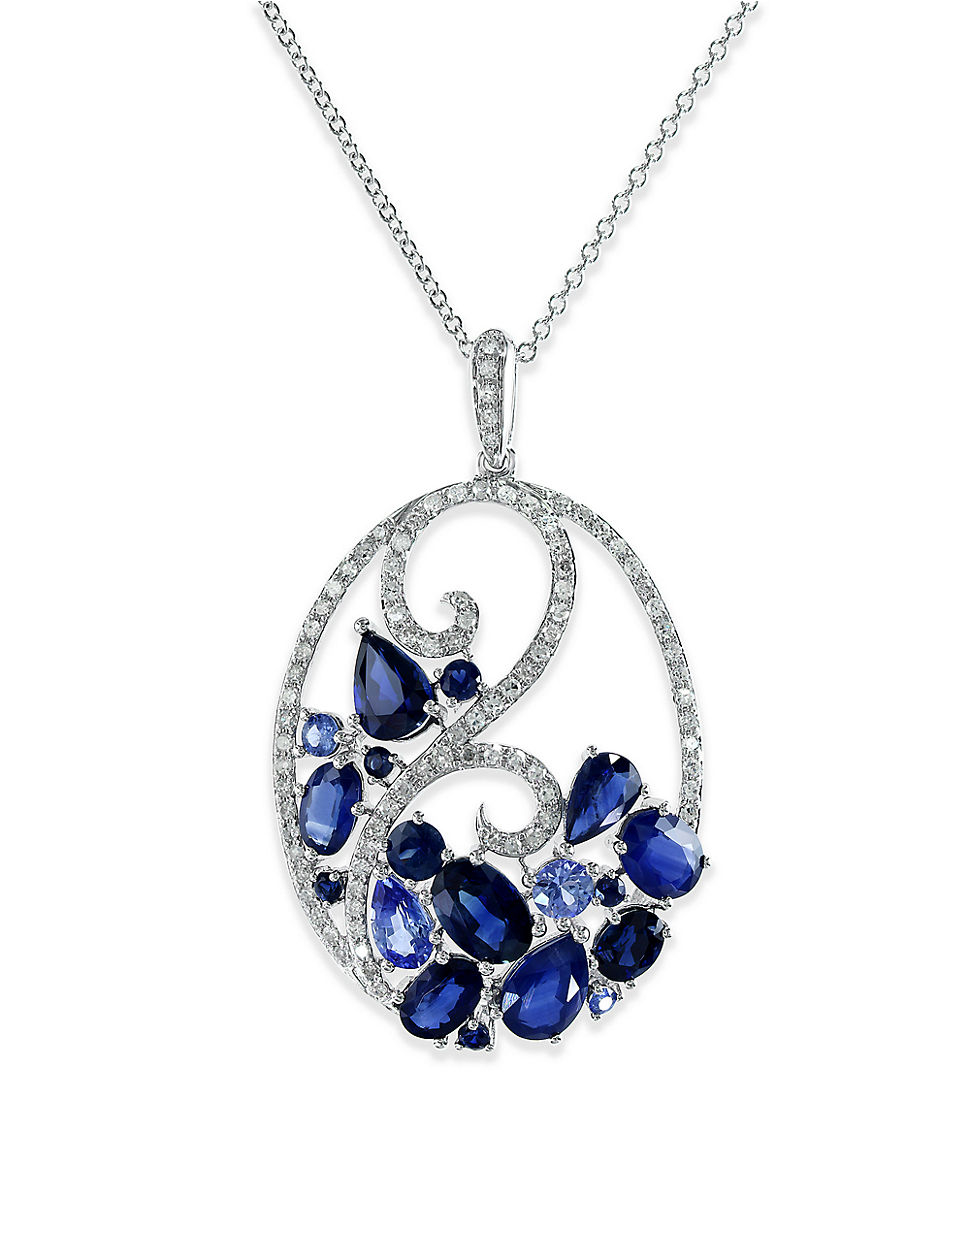 Effy Royale Bleu Ceylon Sapphire, Diamond And 14k White. Ankle Charm. Two Heart Engagement Rings. Little Diamond. Beauty And The Beast Necklace. Large Round Stud Earrings. White Gold Bands. Trim Rings. Artistic Earrings